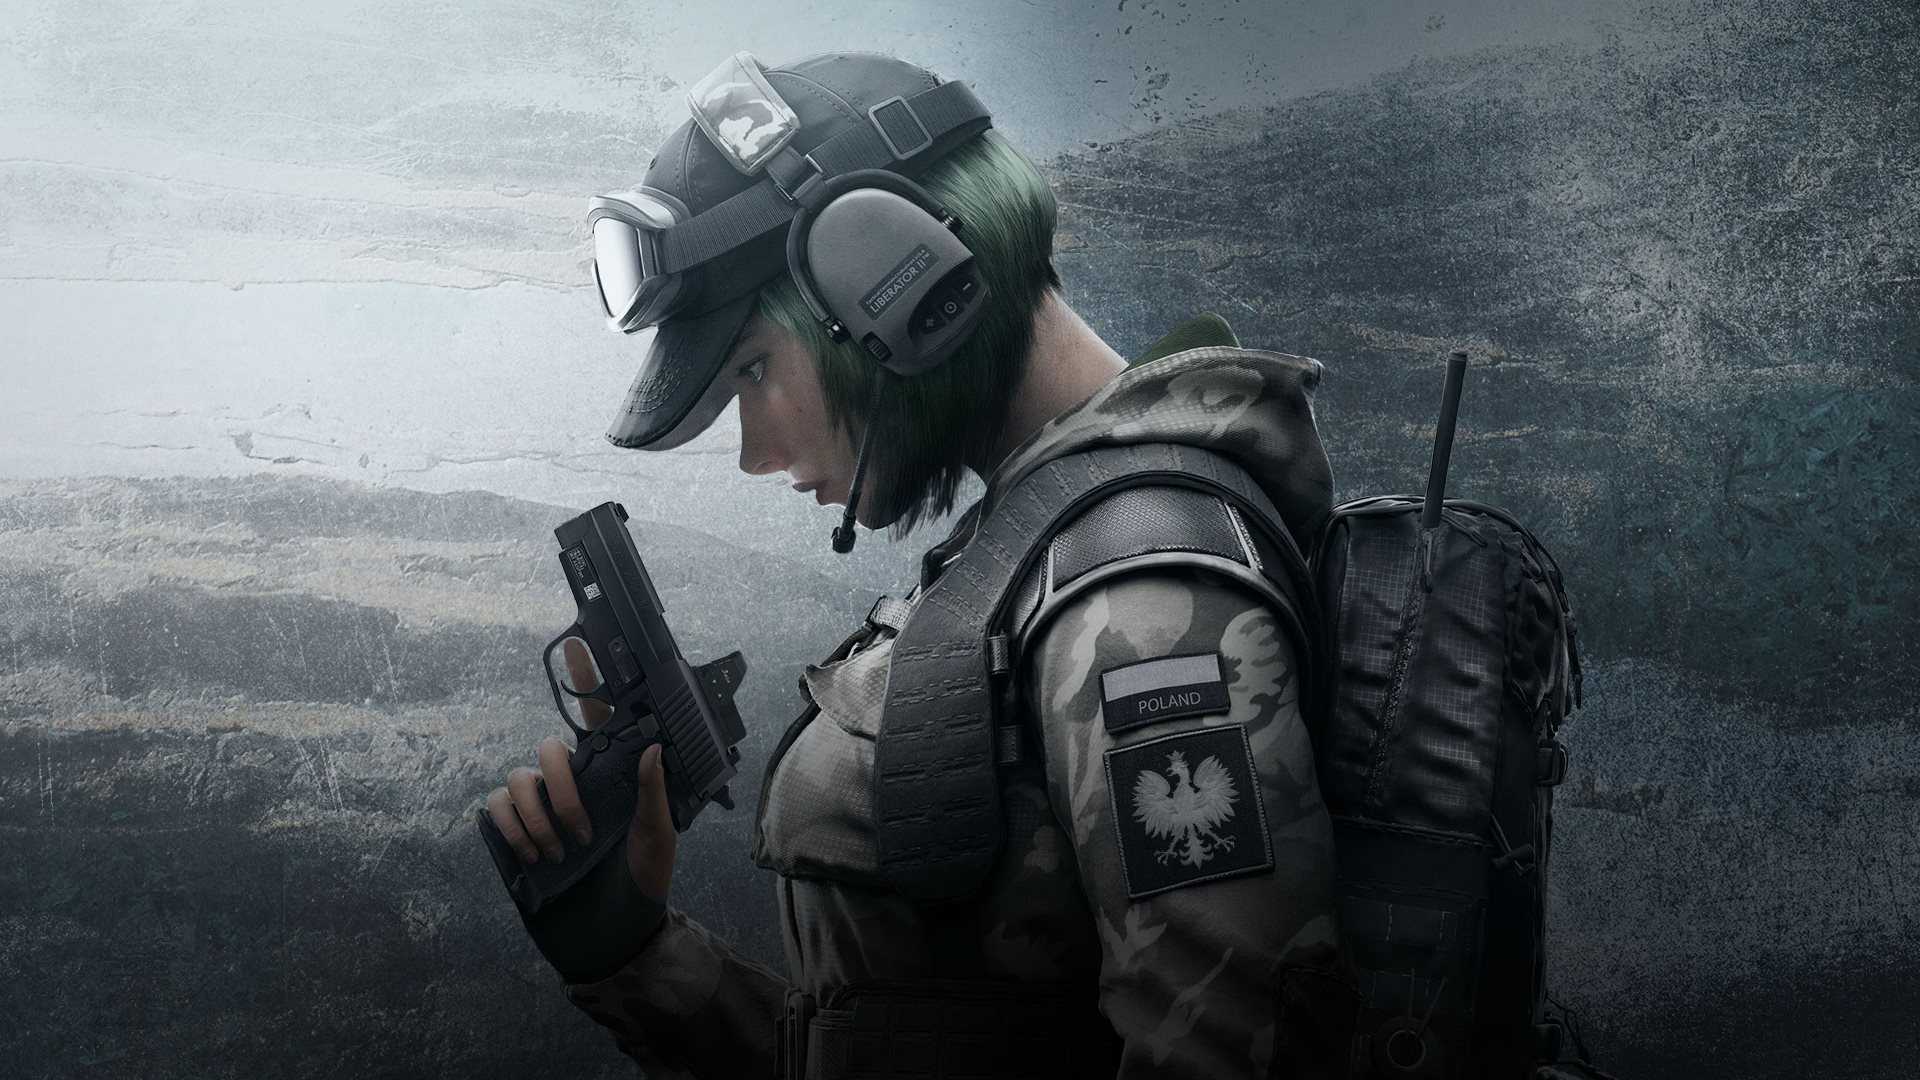 how to get rainbow 6 siege for free